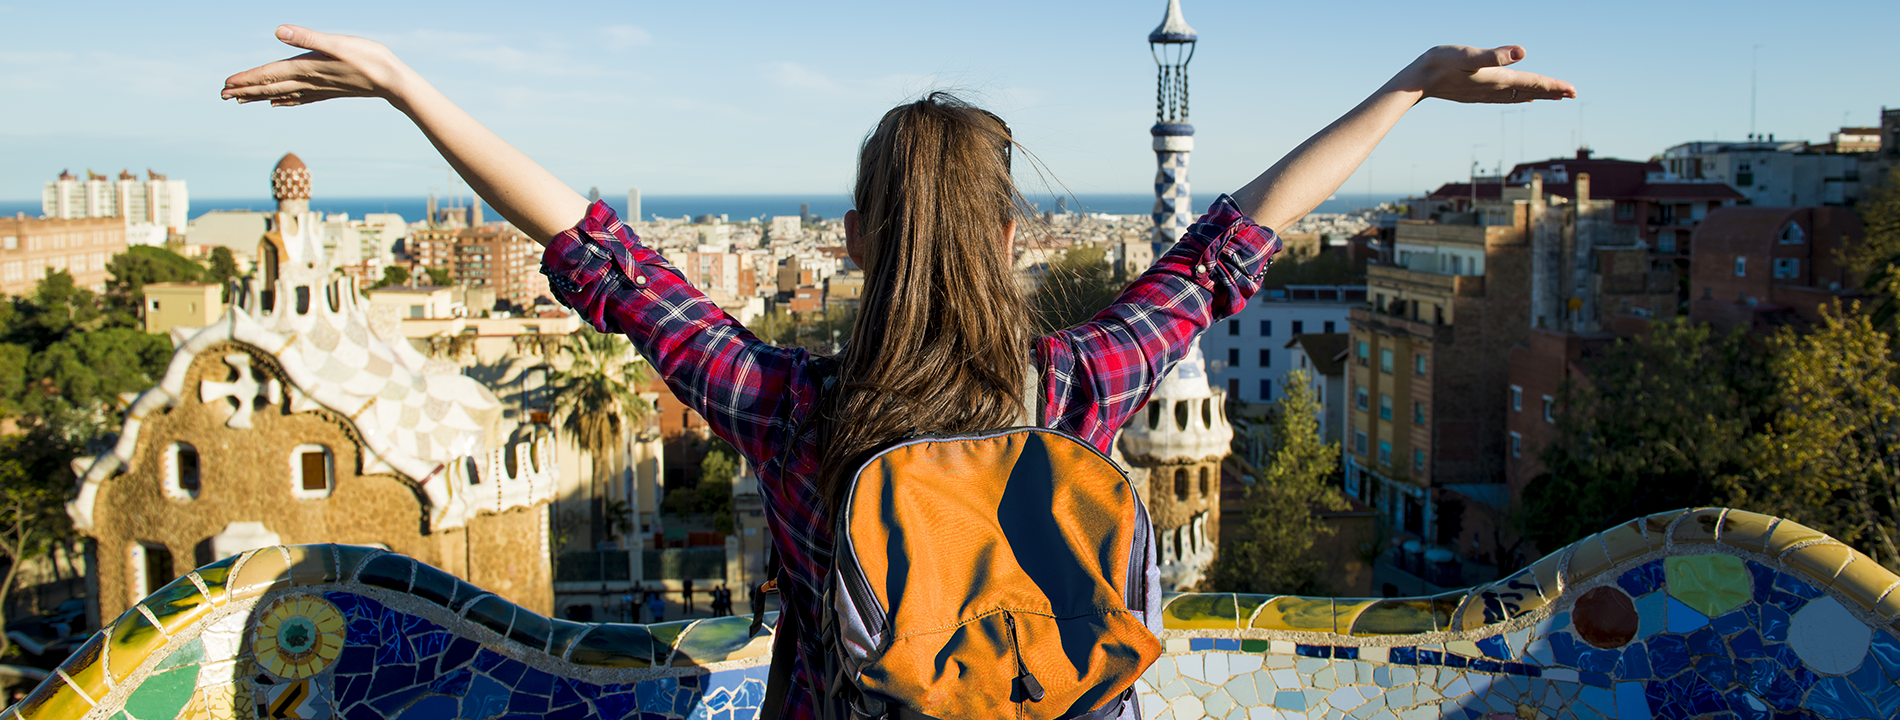 Things to Do on Your Student Trip to Spain